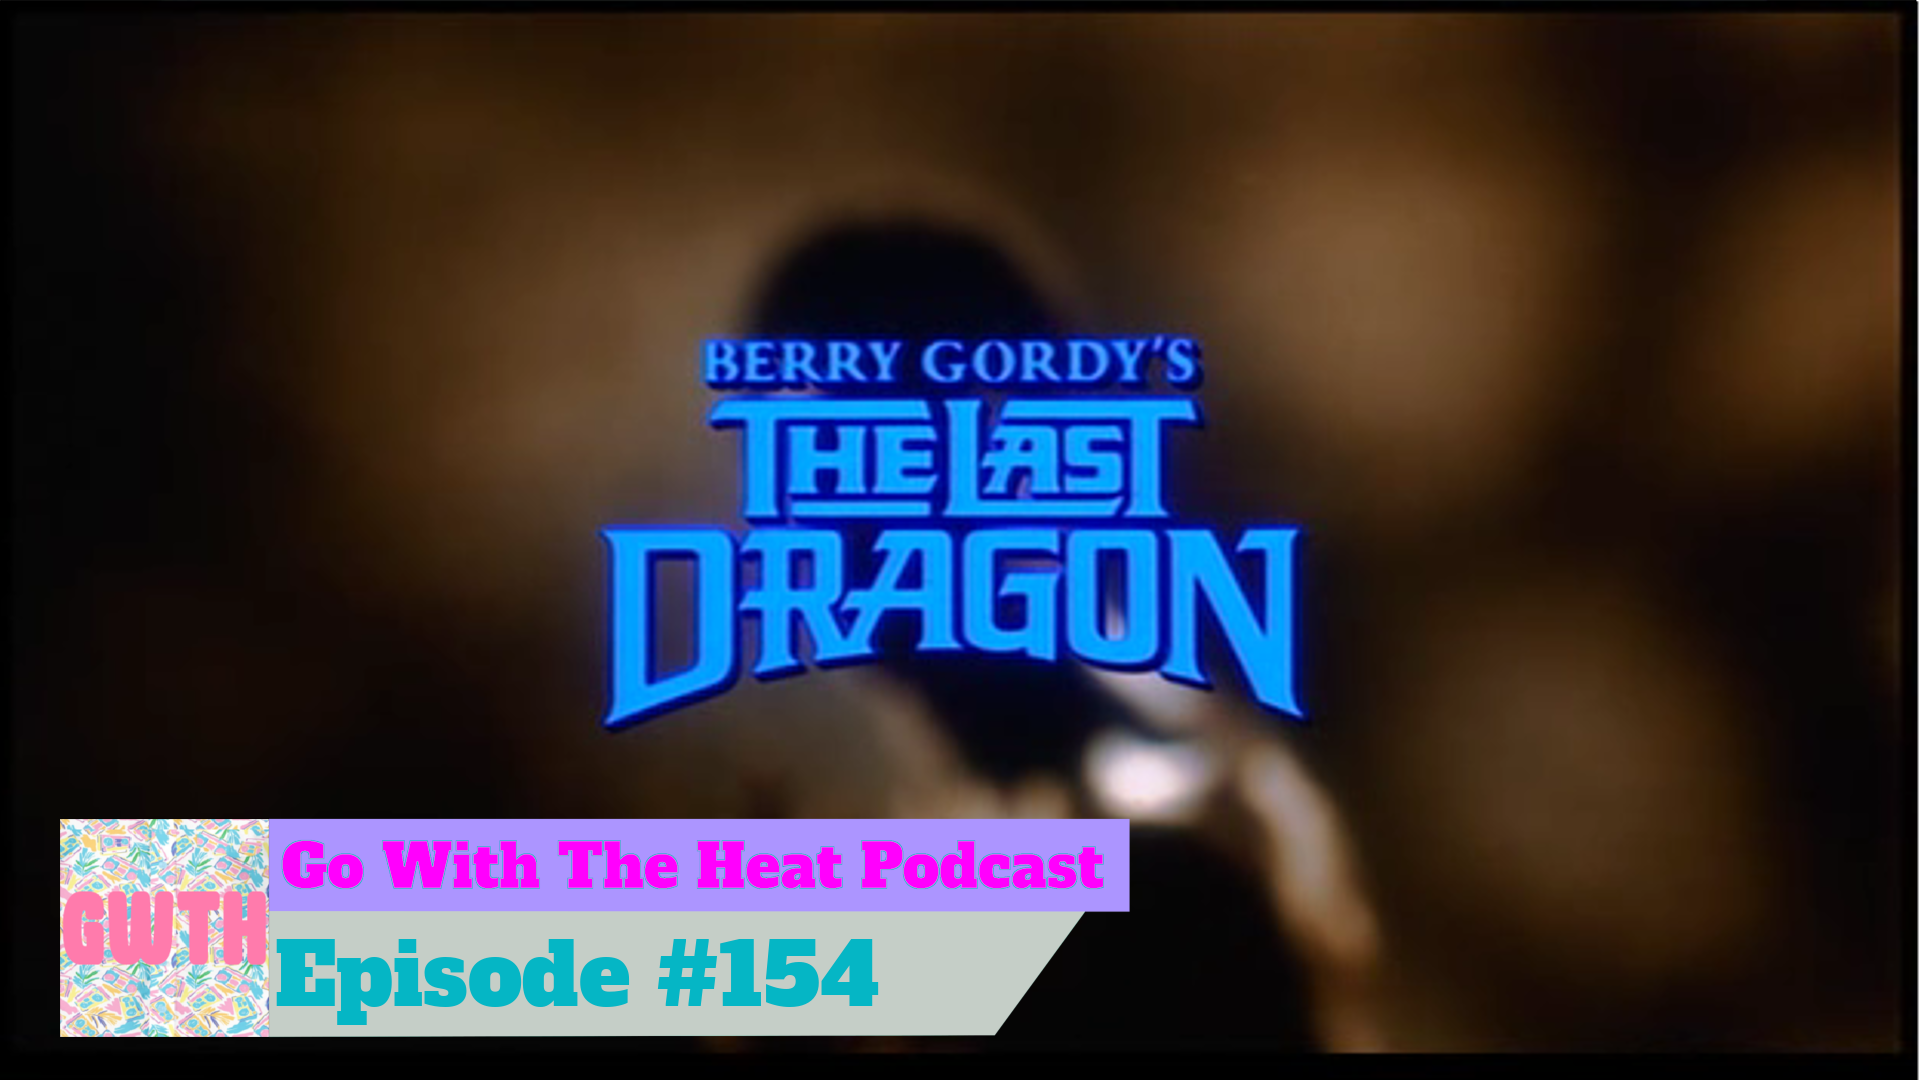 Go With The Heat Episode 154 - The Last Dragon. Title card from the movie with podcast logo in bottom left.